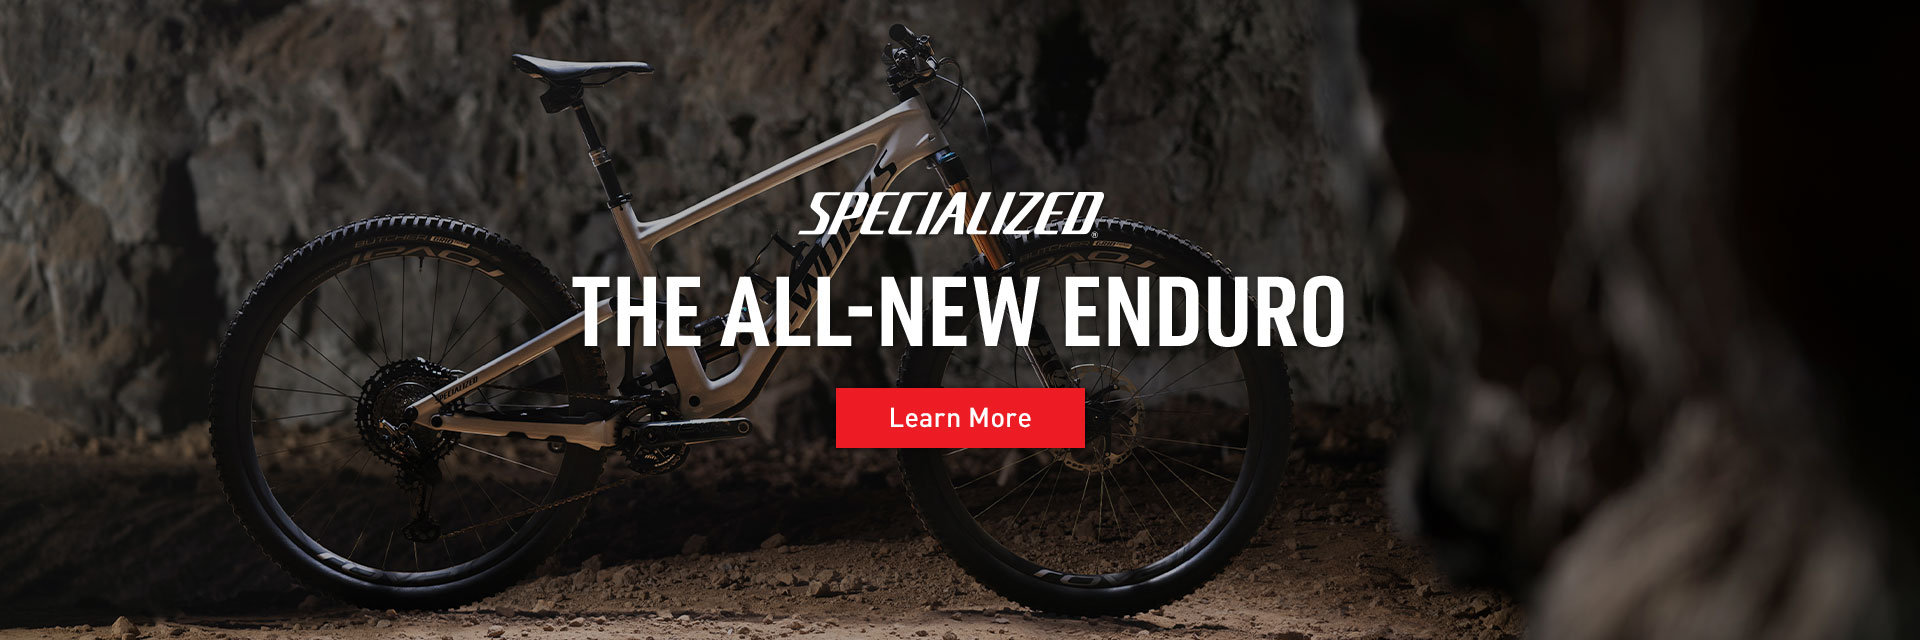 Shop The Specialized Enduro